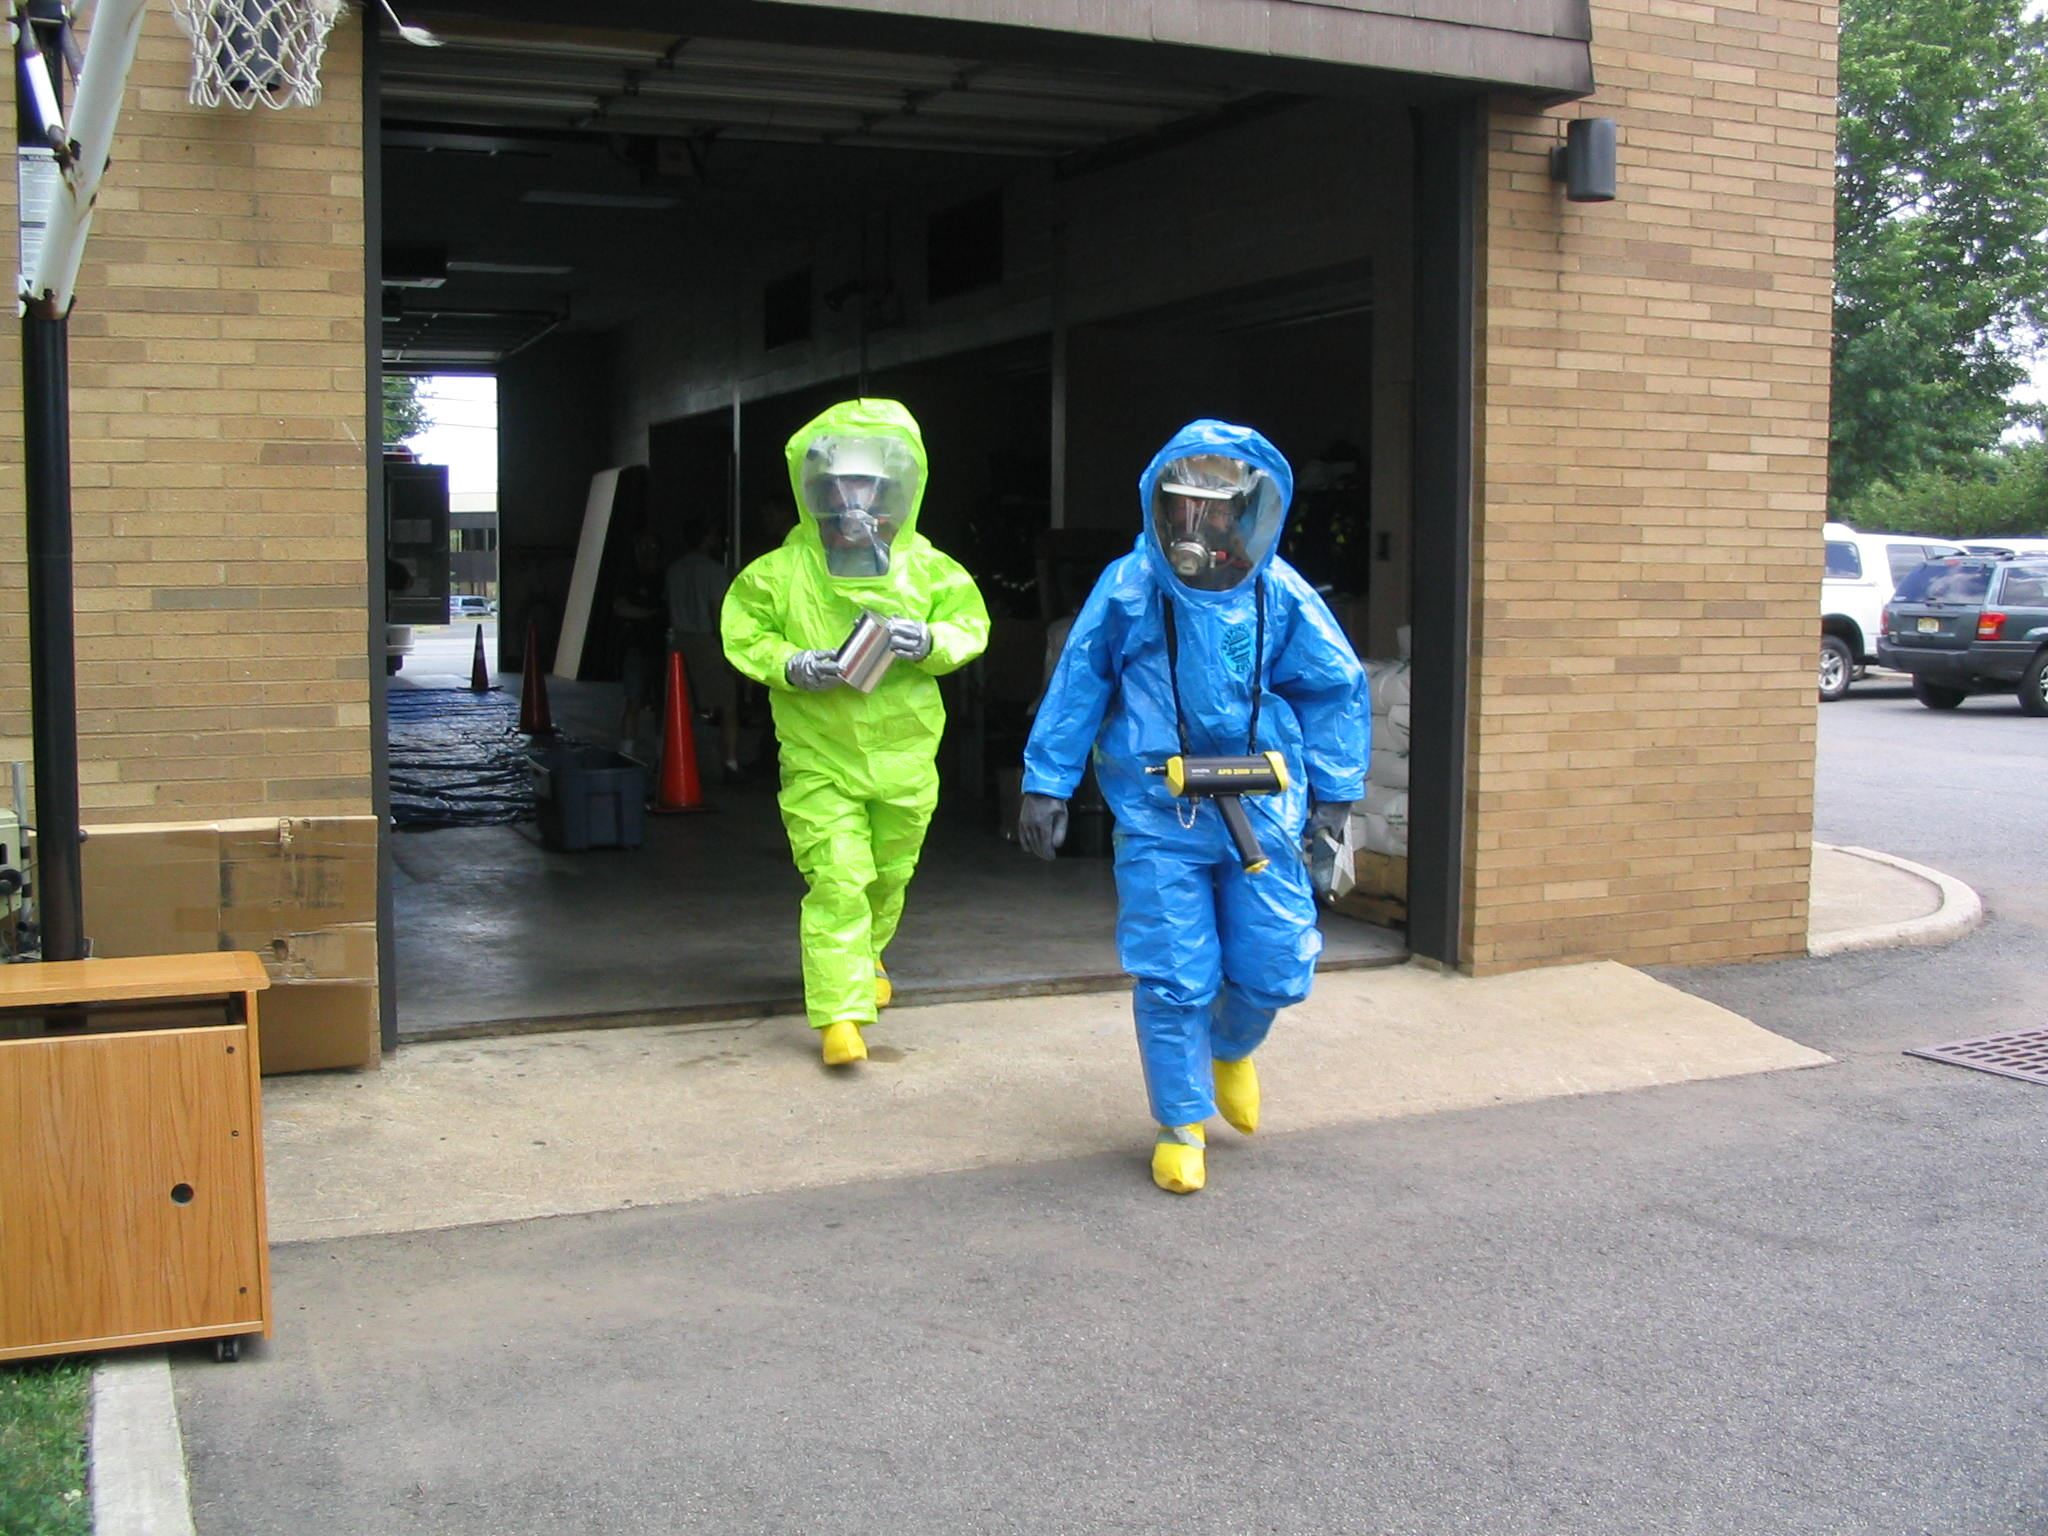 Two Hazmat People Walking